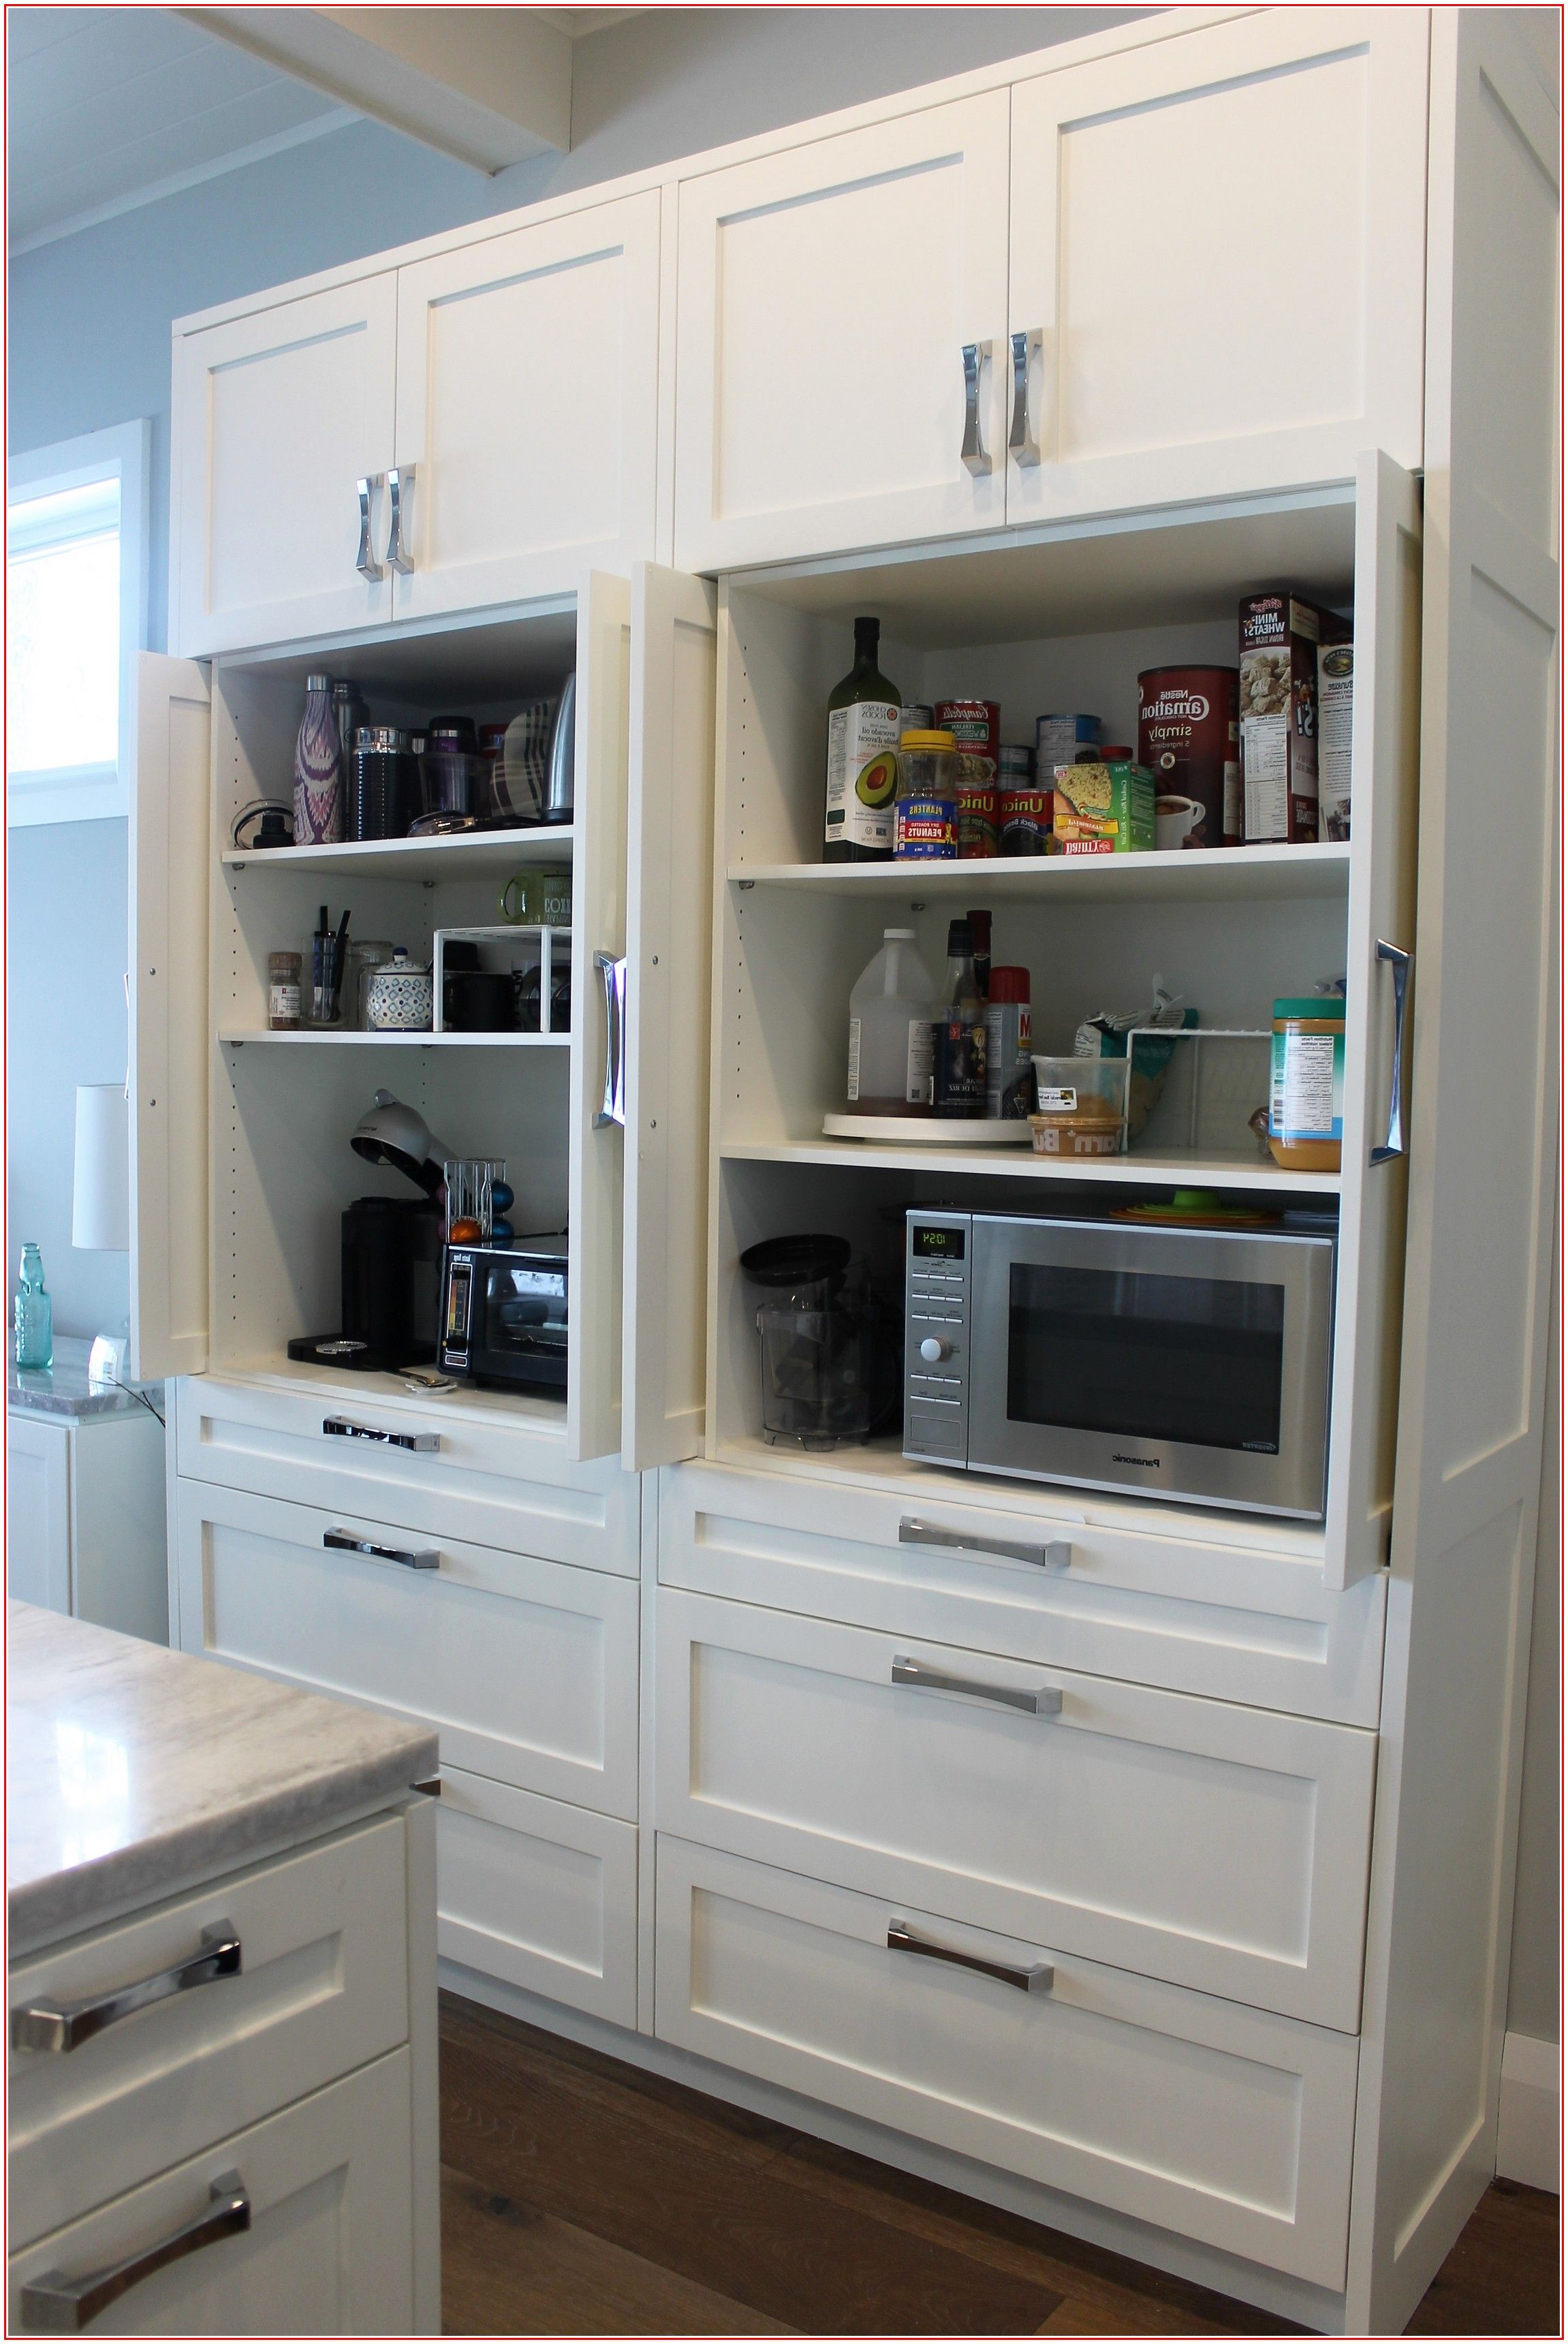 custom cabinet shops near me  Kitchen cabinets and countertops